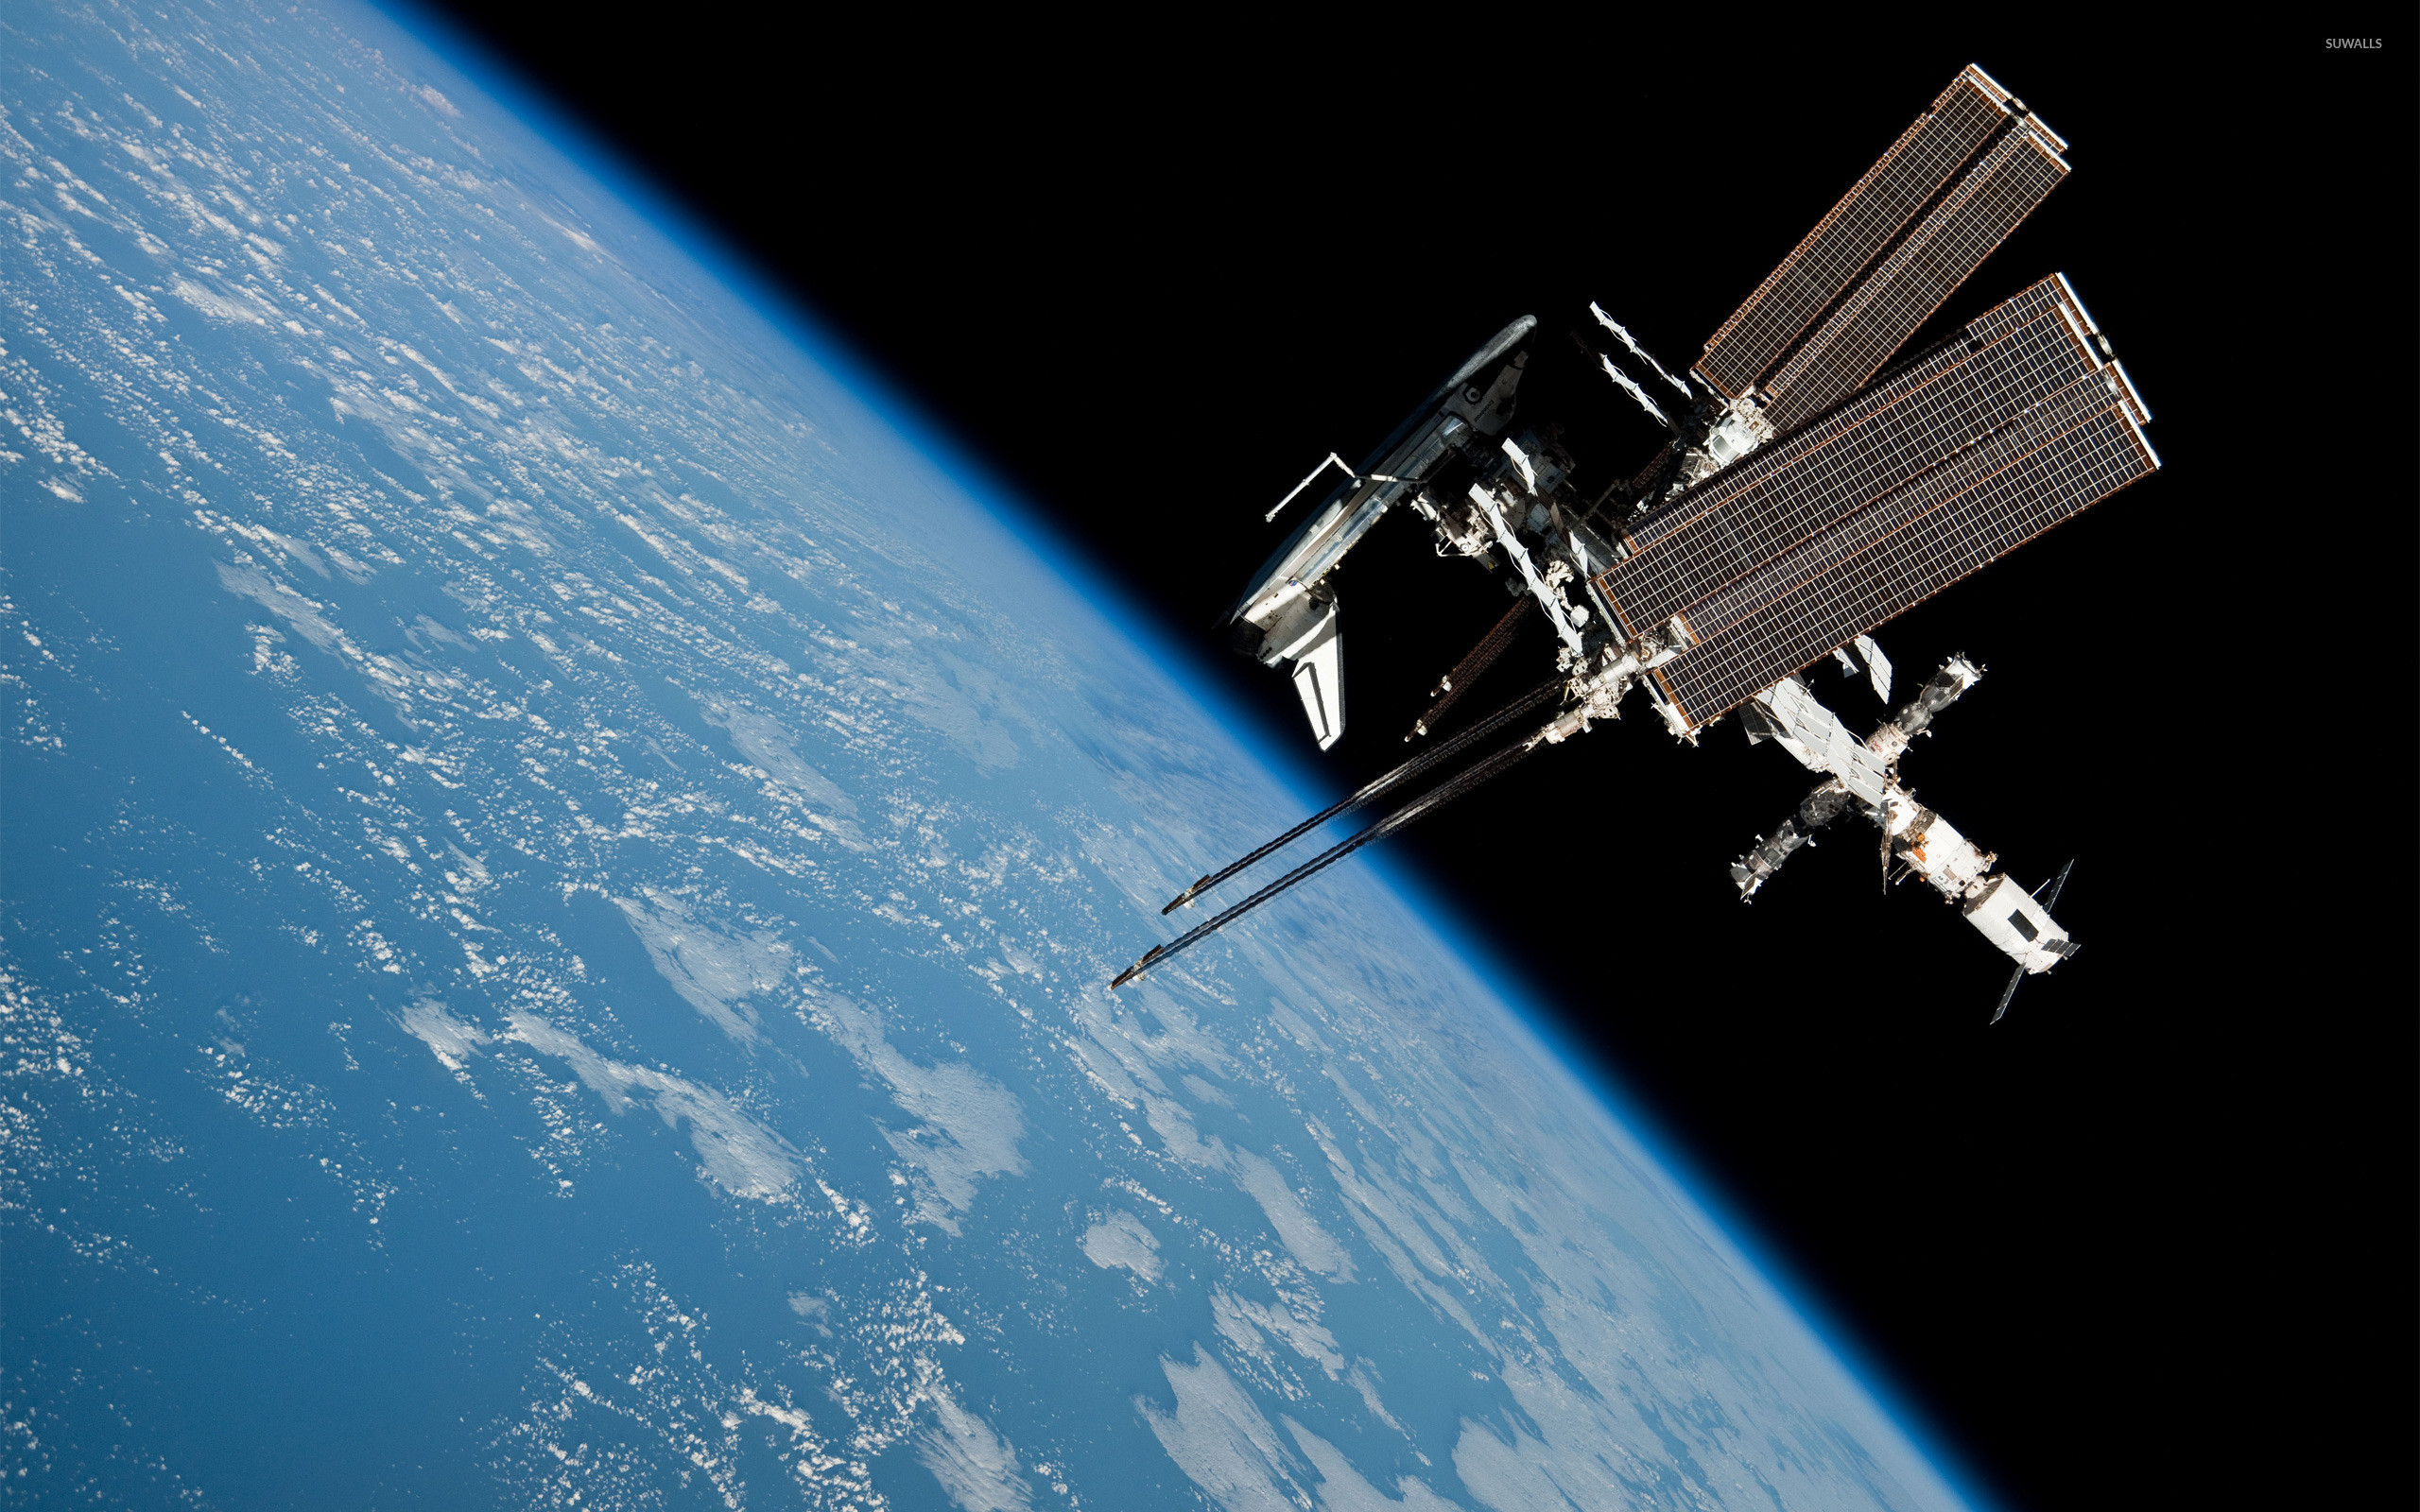 2560x1600 International Space Station [4] wallpaper  jpg